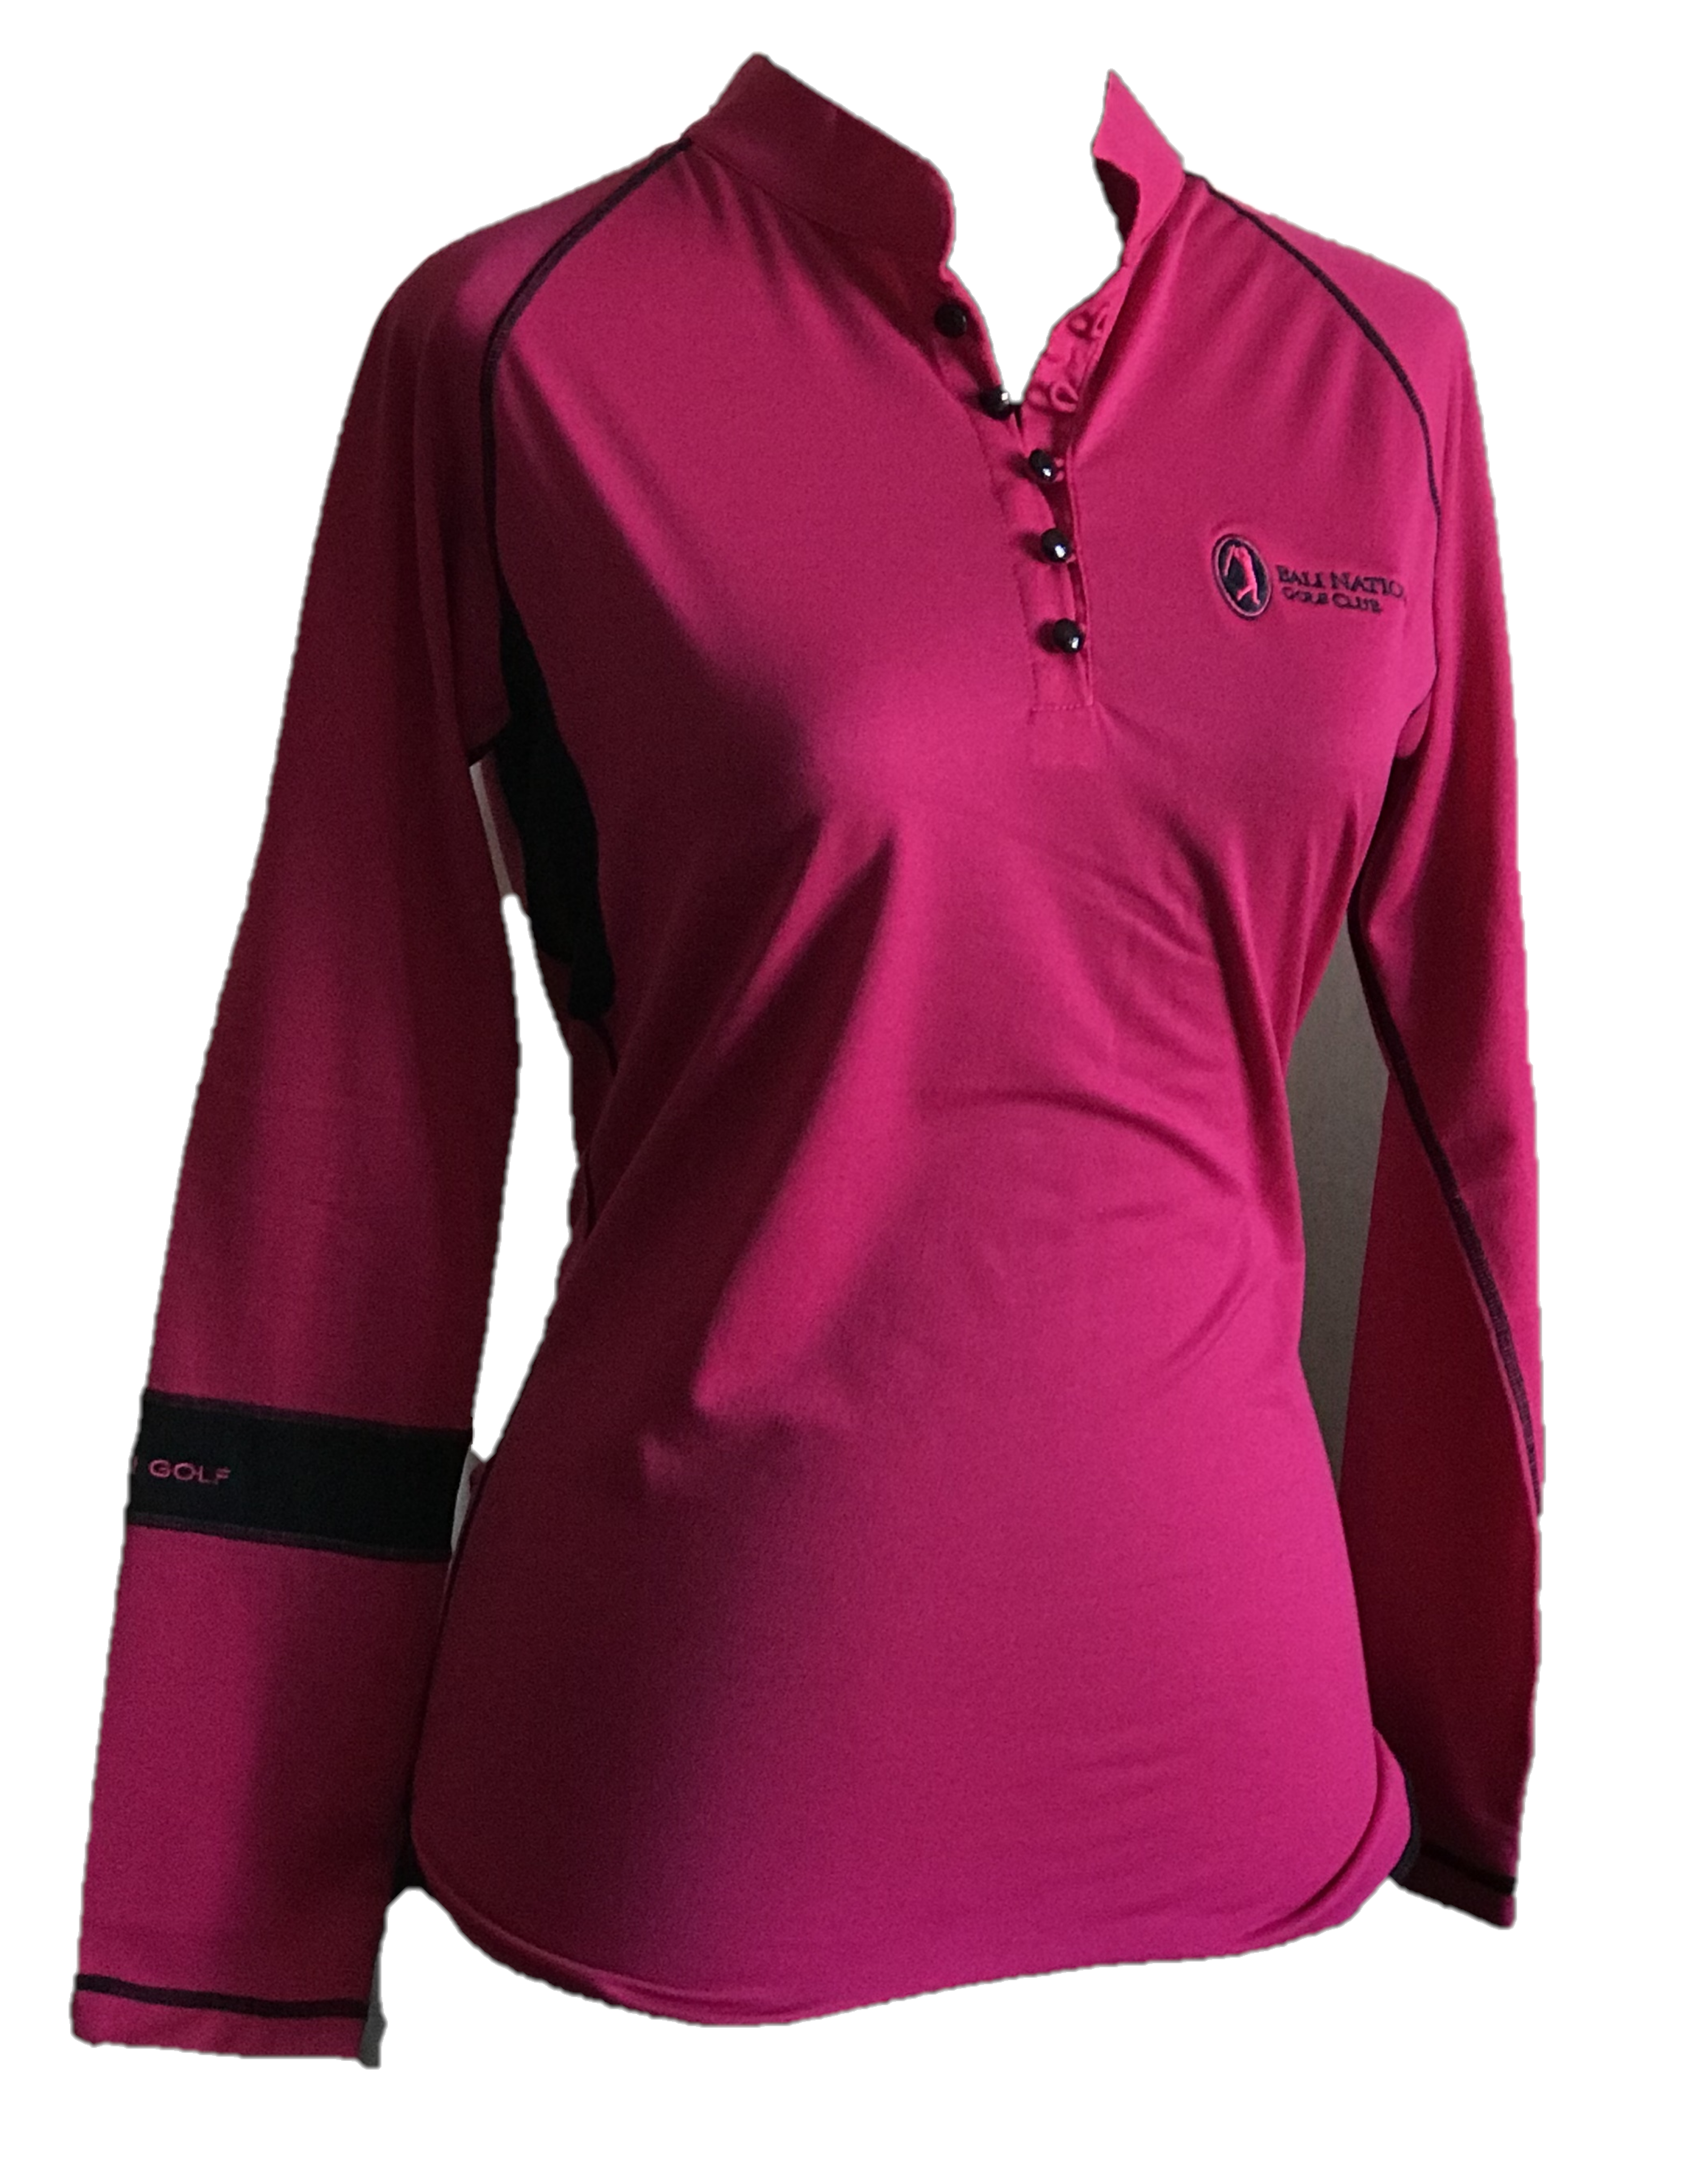 LT-072B || Ladies Top Pink With Button Mandarin Neck & Black Band One Arm Long Sleeve